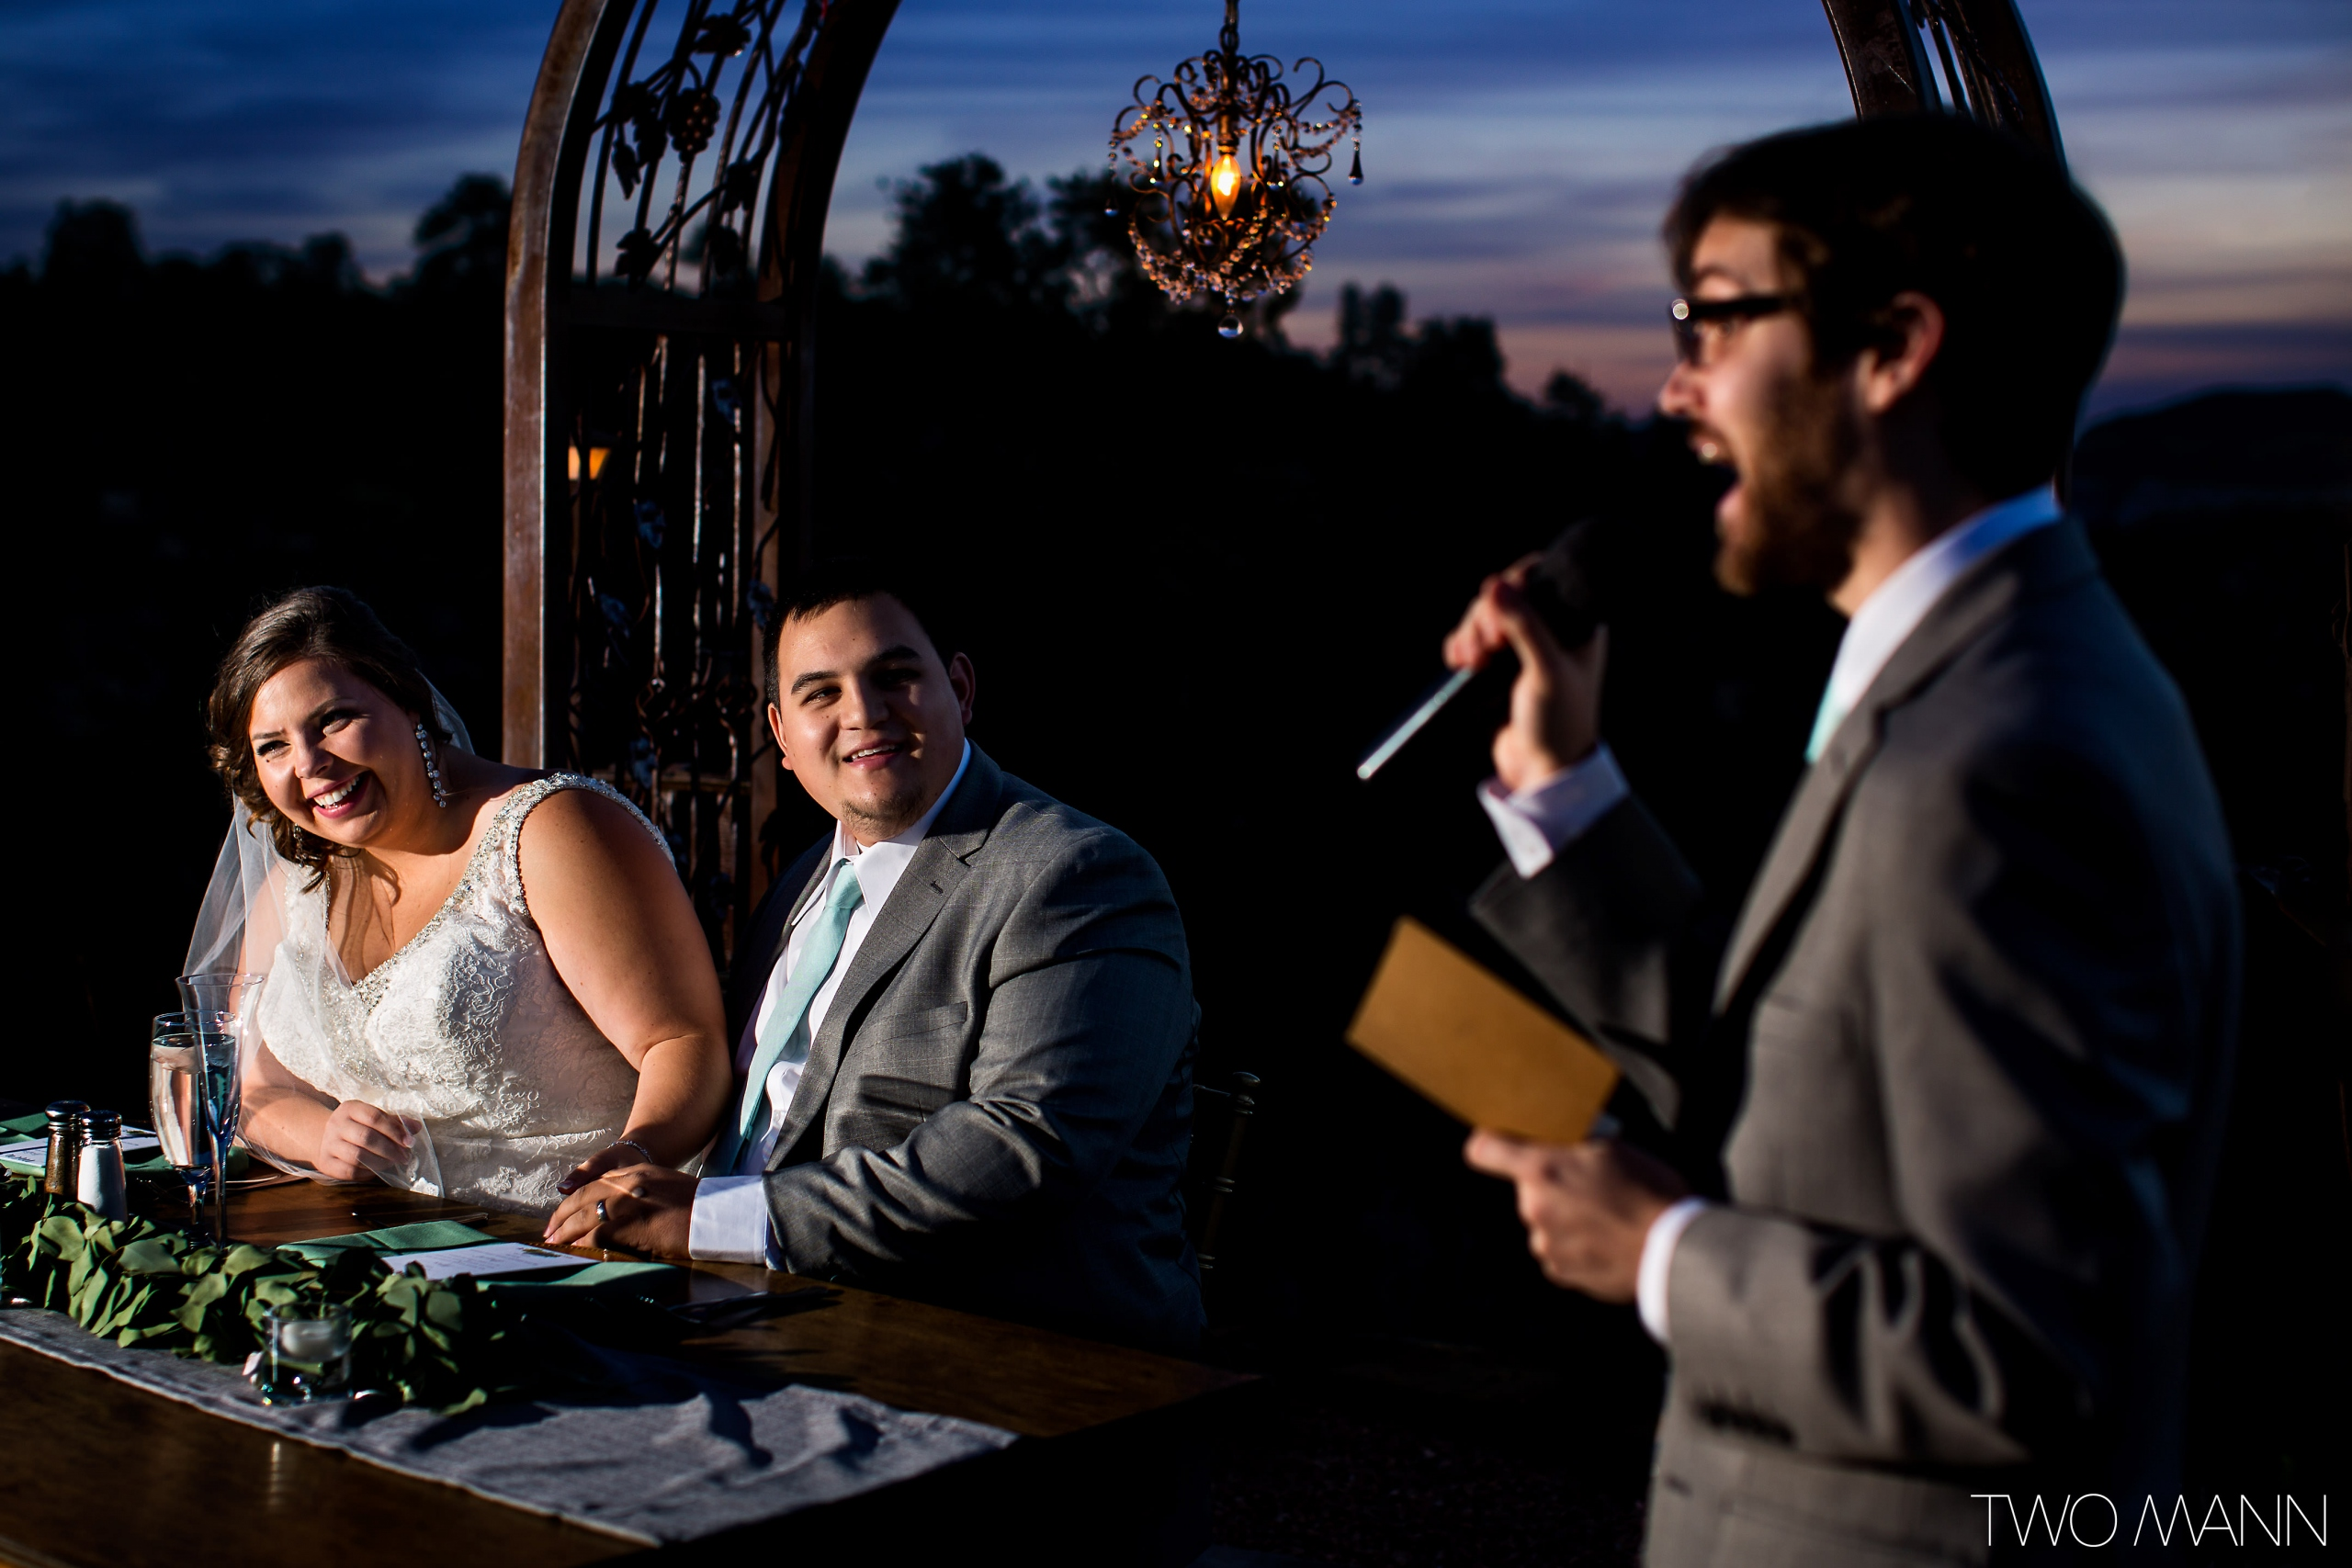 newlyweds enjoying speech of a wedding guest